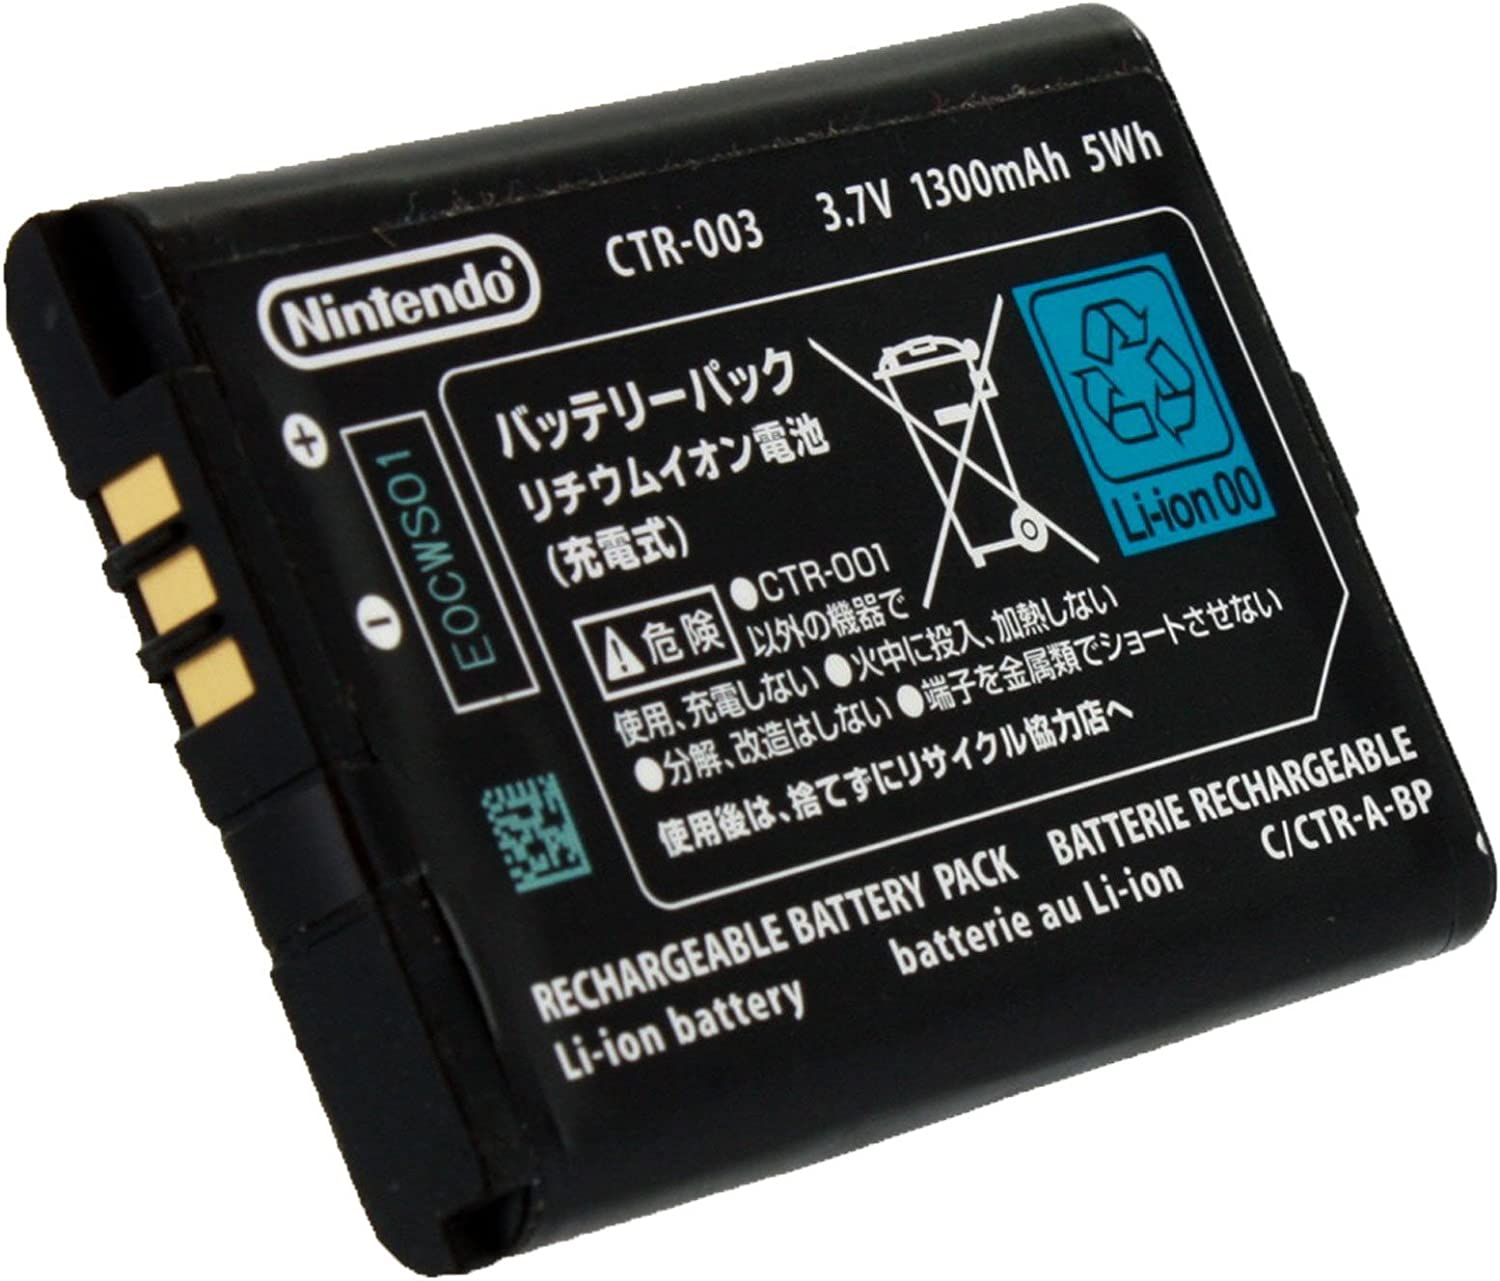 OFFICIAL OEM Nintendo 3DS CTR-003 Rechargeable Battery(Not compatiable with3DS XL)